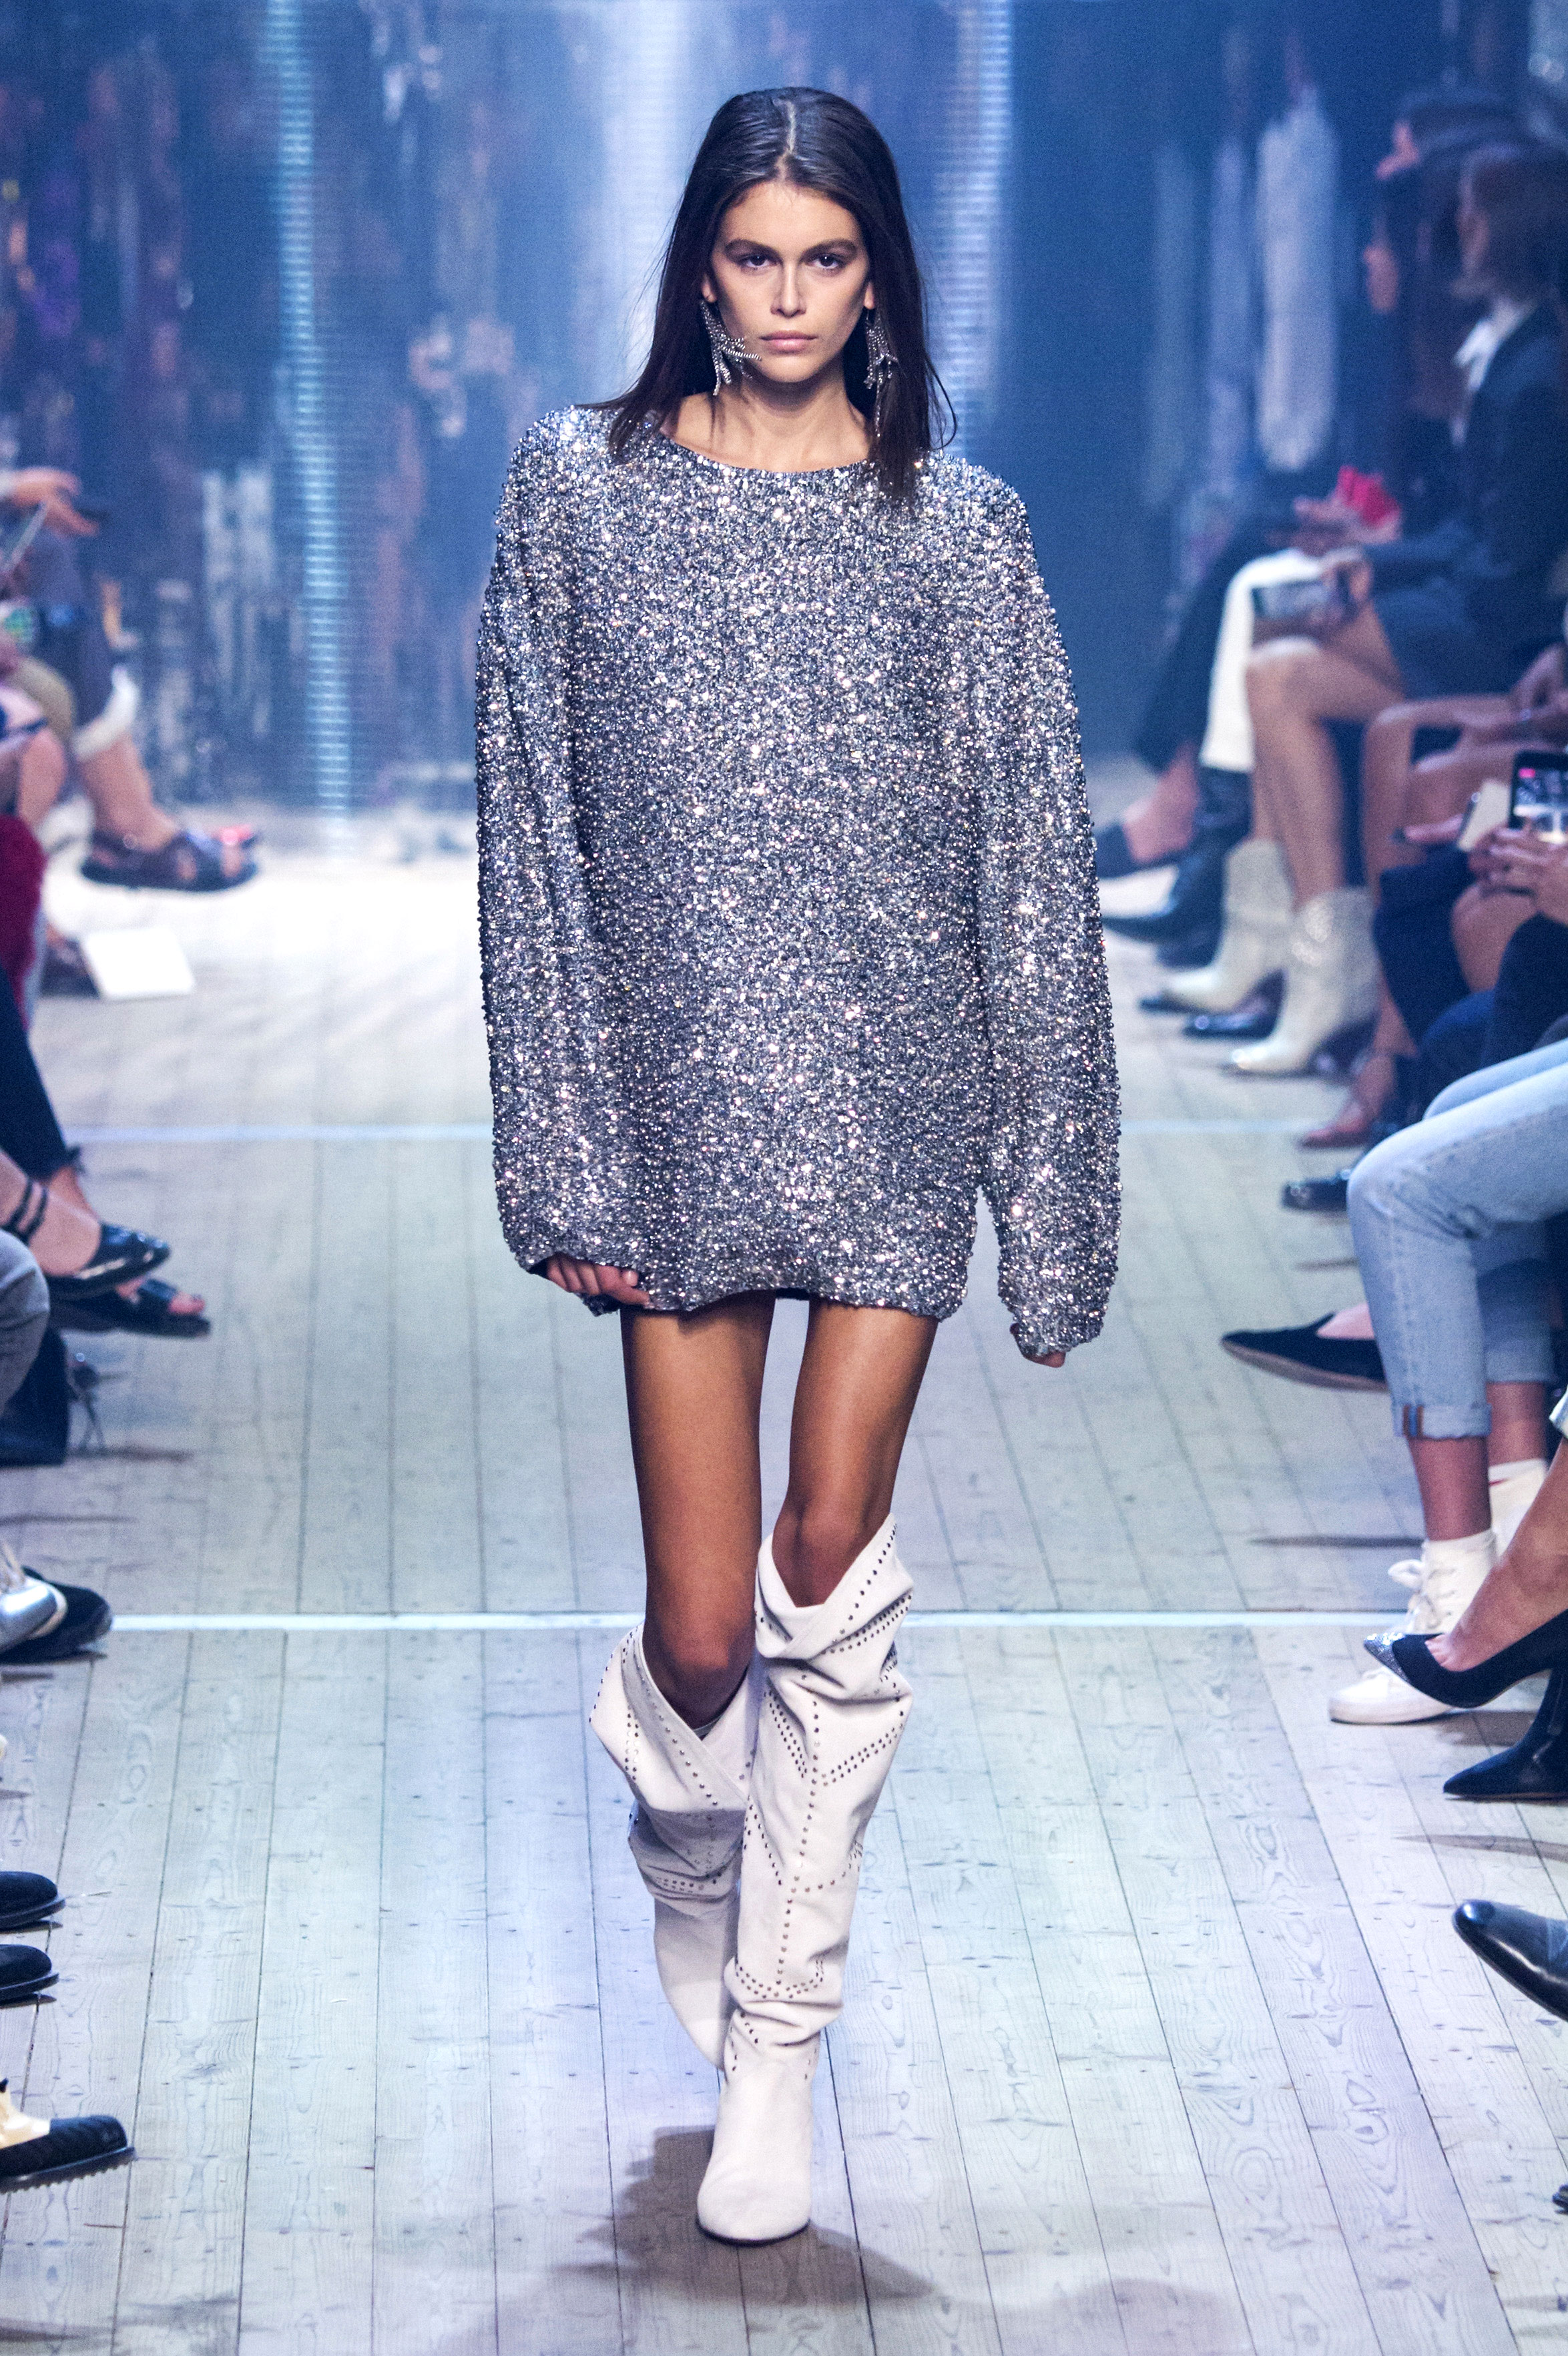 Kaia Gerber - Gerber walked the Isabel Marant show in a dazzling sweatshirt and knee-high boots during Paris Fashion Week.